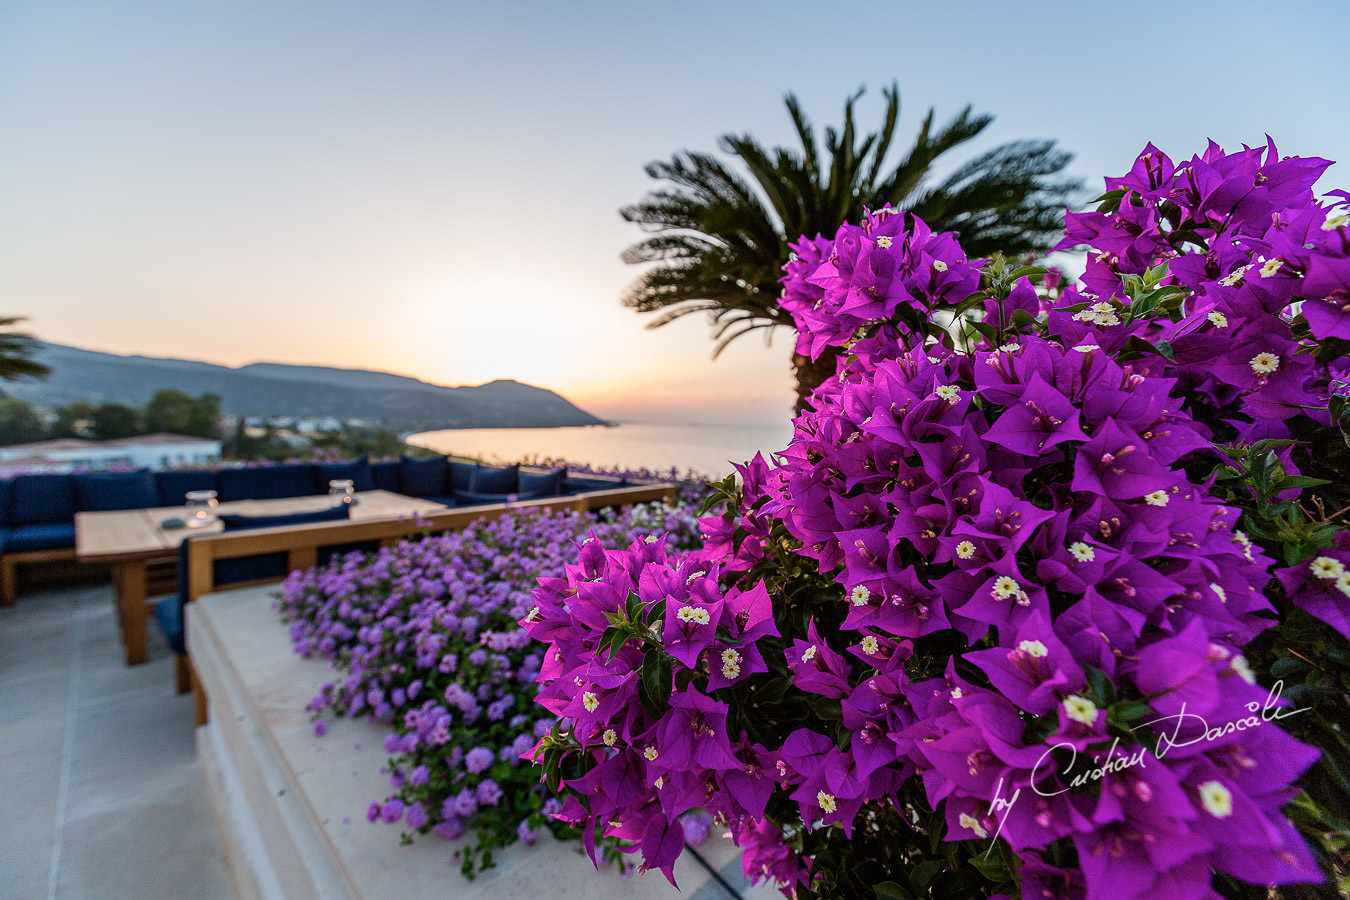 Breathtaking sunset view at the beautiful Anassa Hotel photographed by Cyprus Photographer Cristian Dascalu.